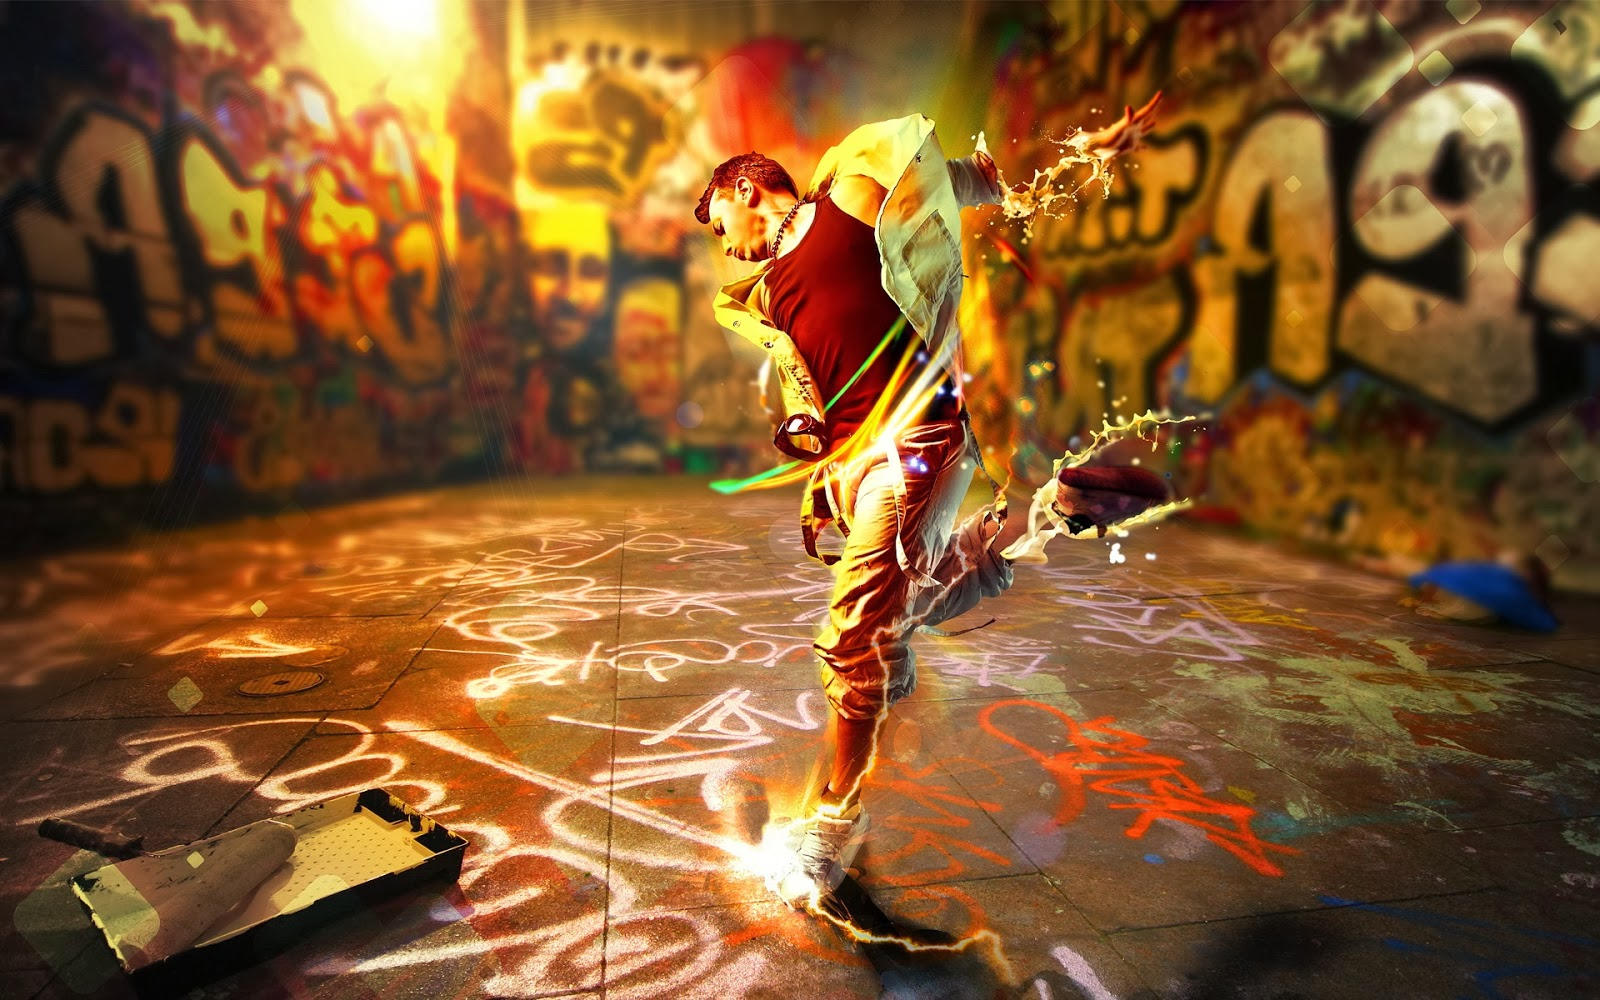 FREE HD PHOTO GALLERY Awesome 3D Street Art Wallpapers Full HD 2014 1600x1000